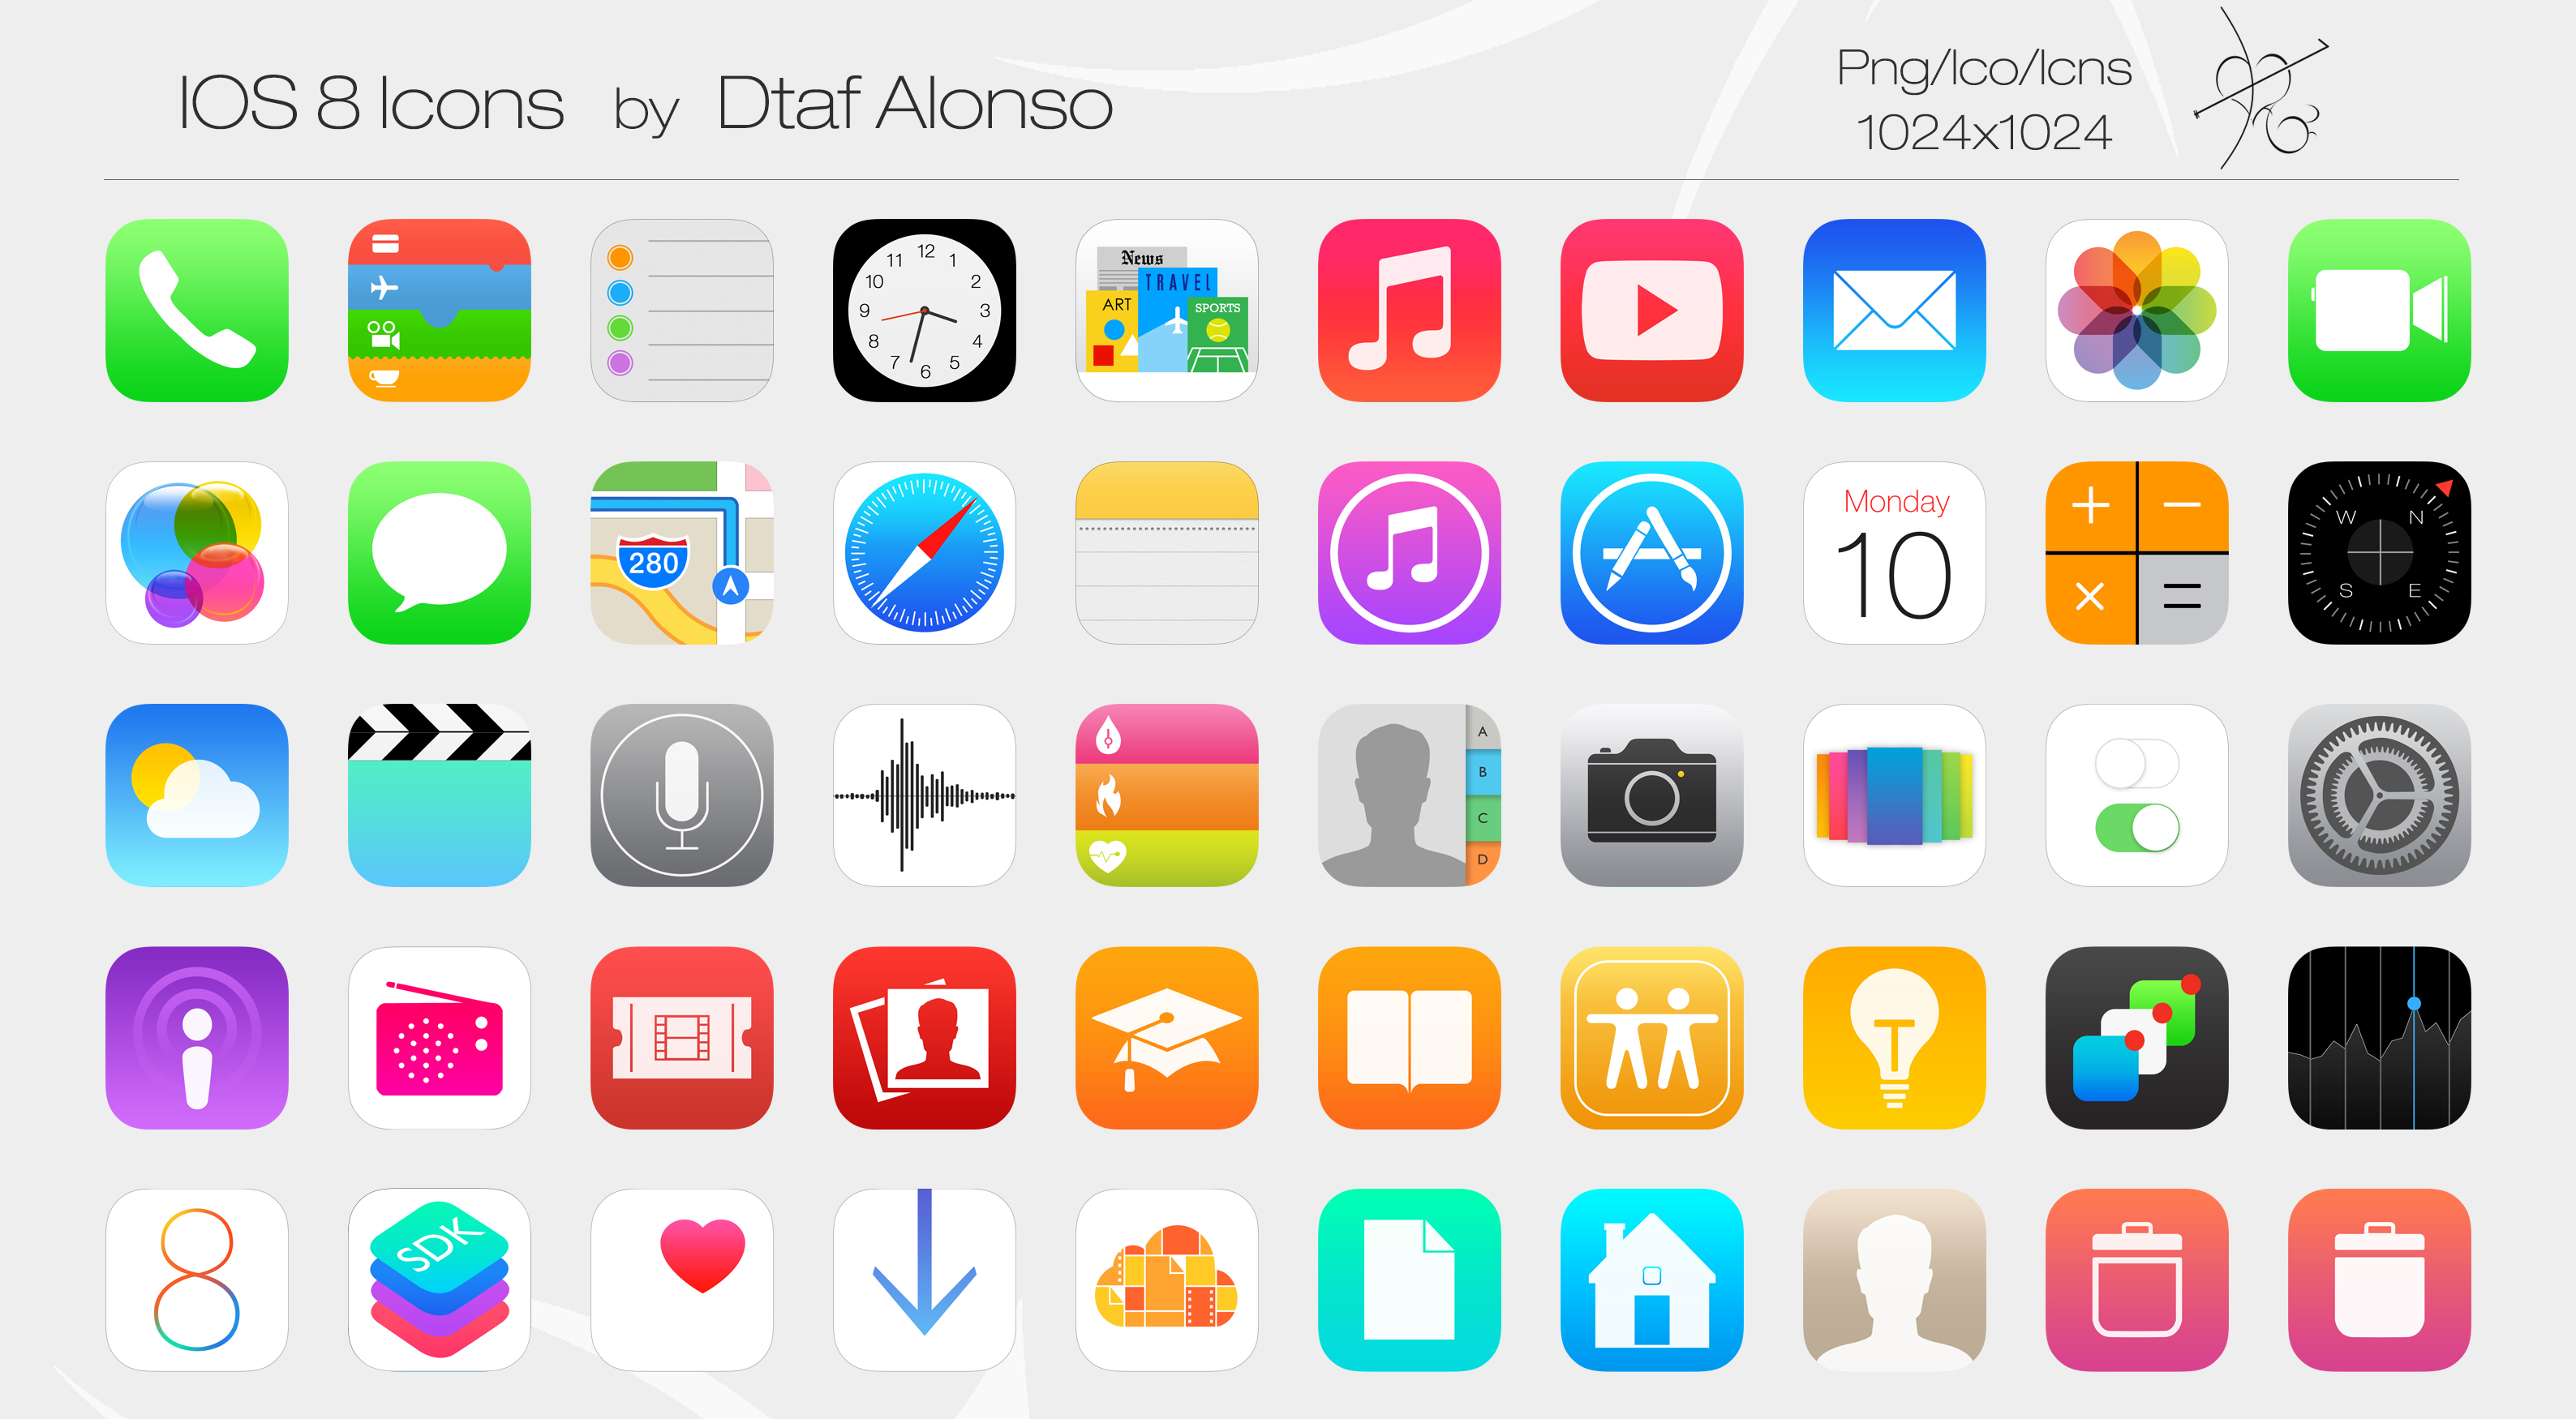 17 IOS 8 Contacts Icon Images